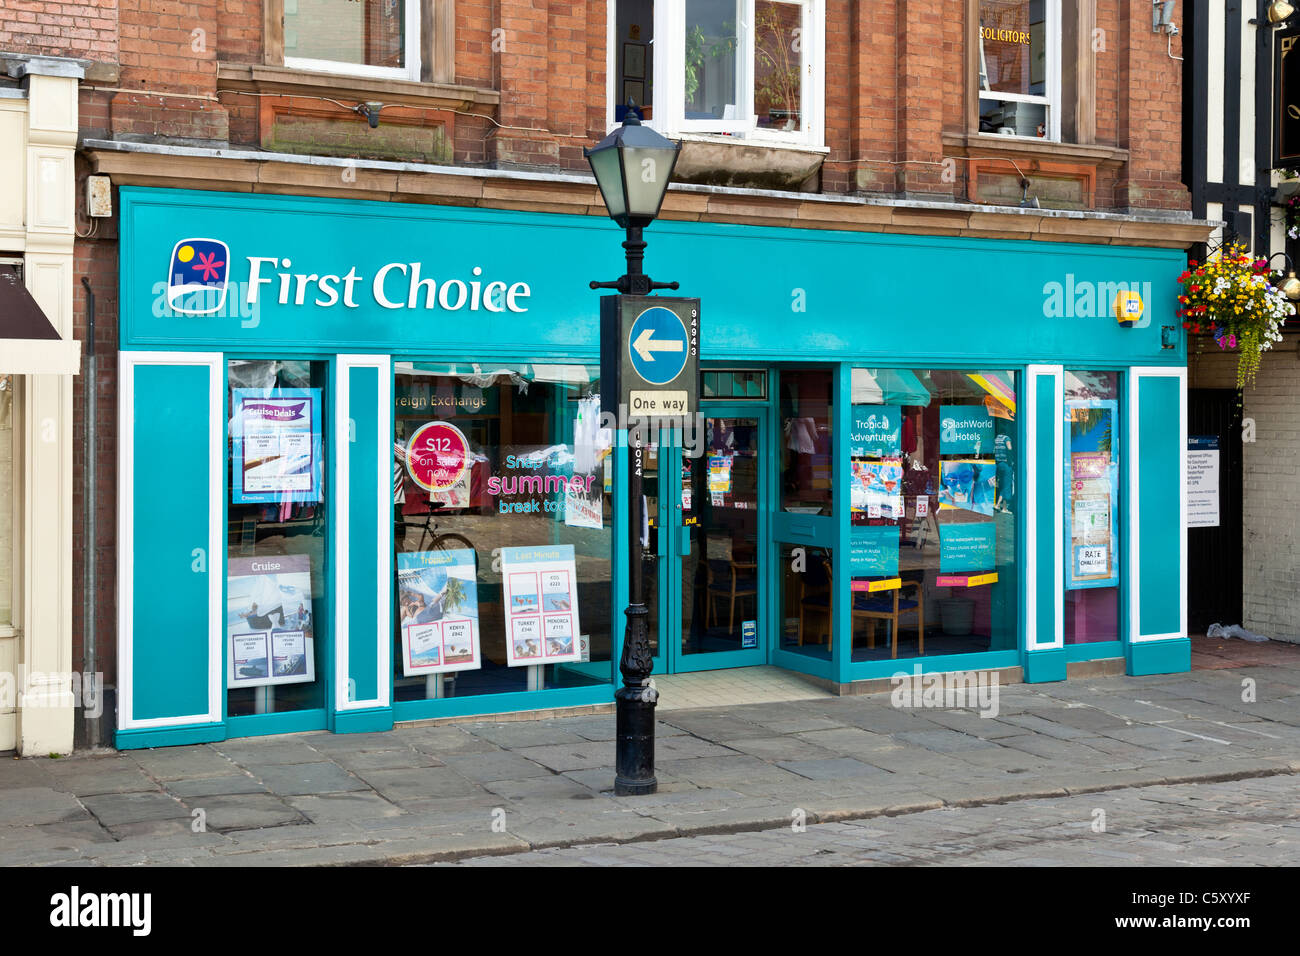 'First Choice' travel agency, Chesterfield, Derbyshire - Stock Image